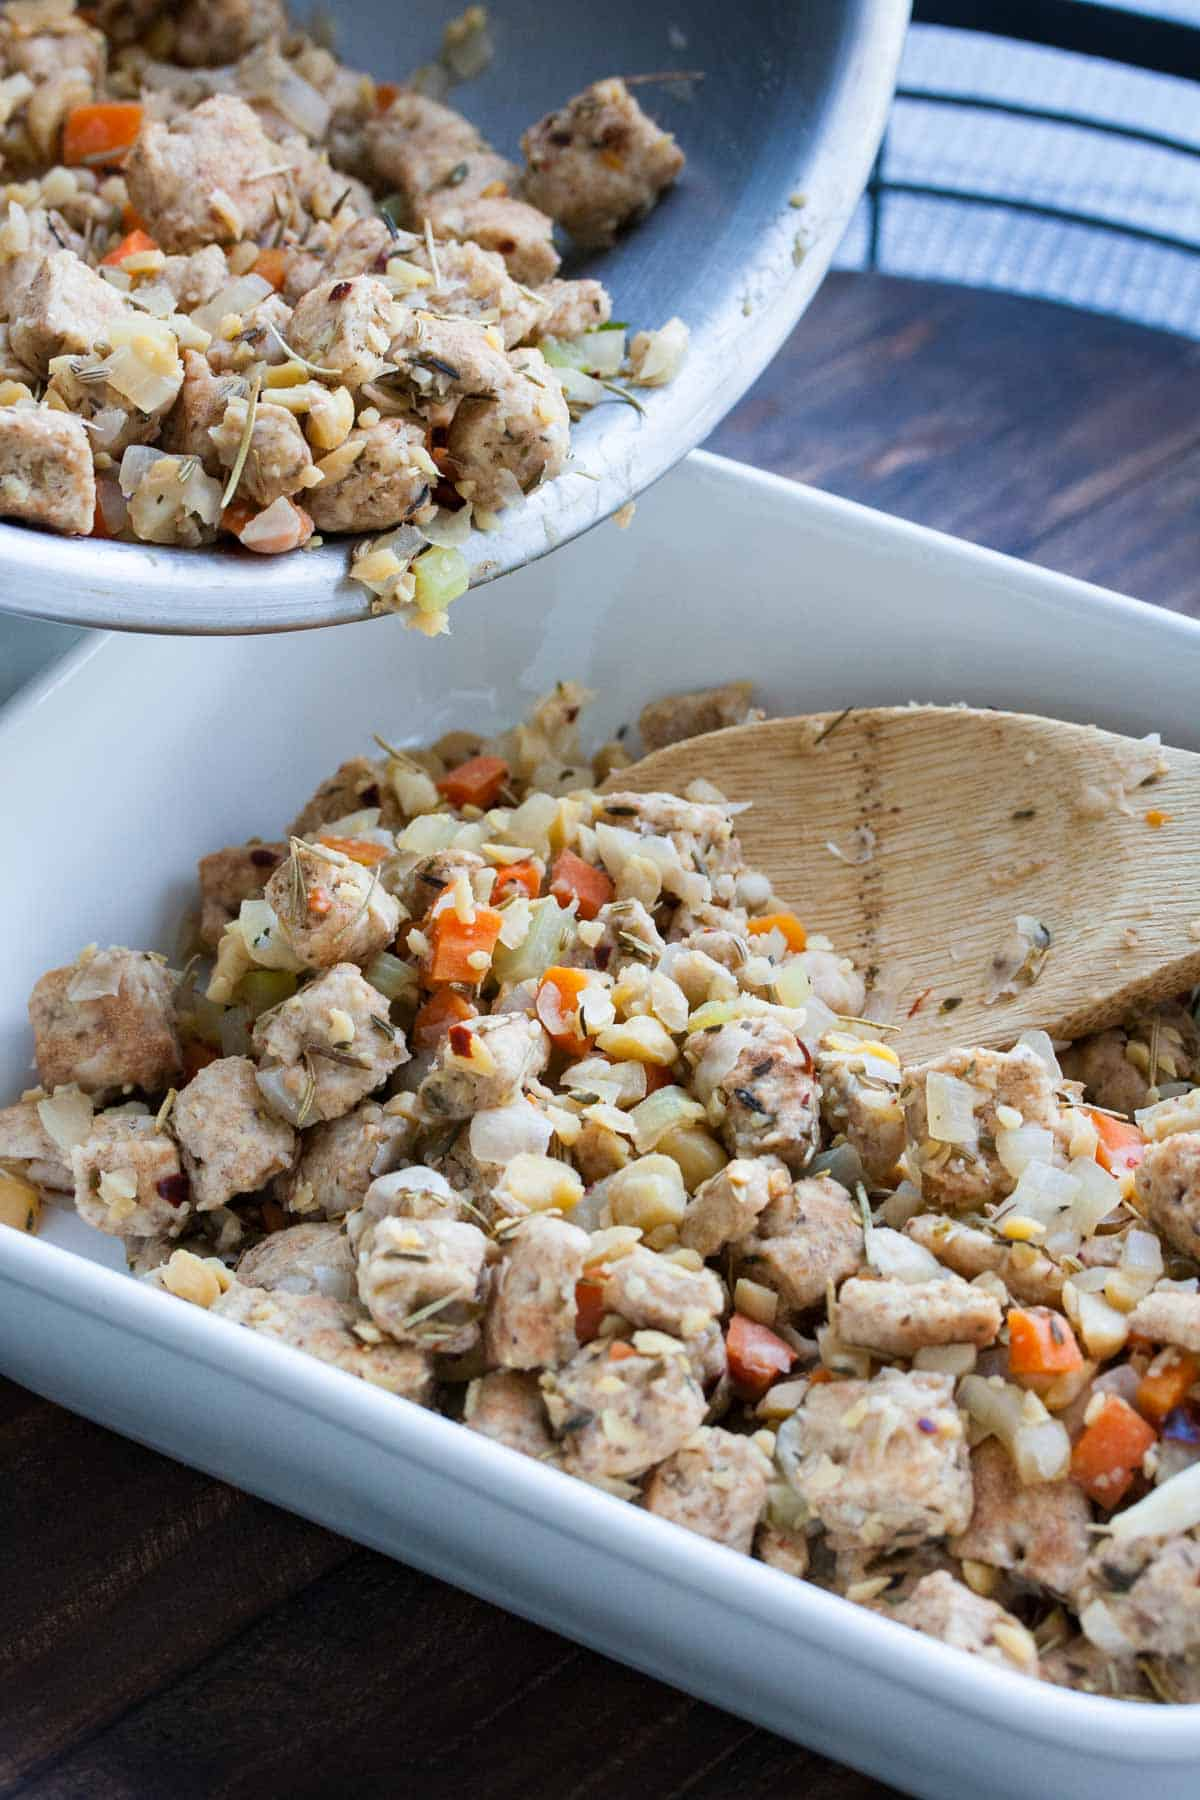 Pouring stuffing from silver bowl into white baking dish with a wooden spoon